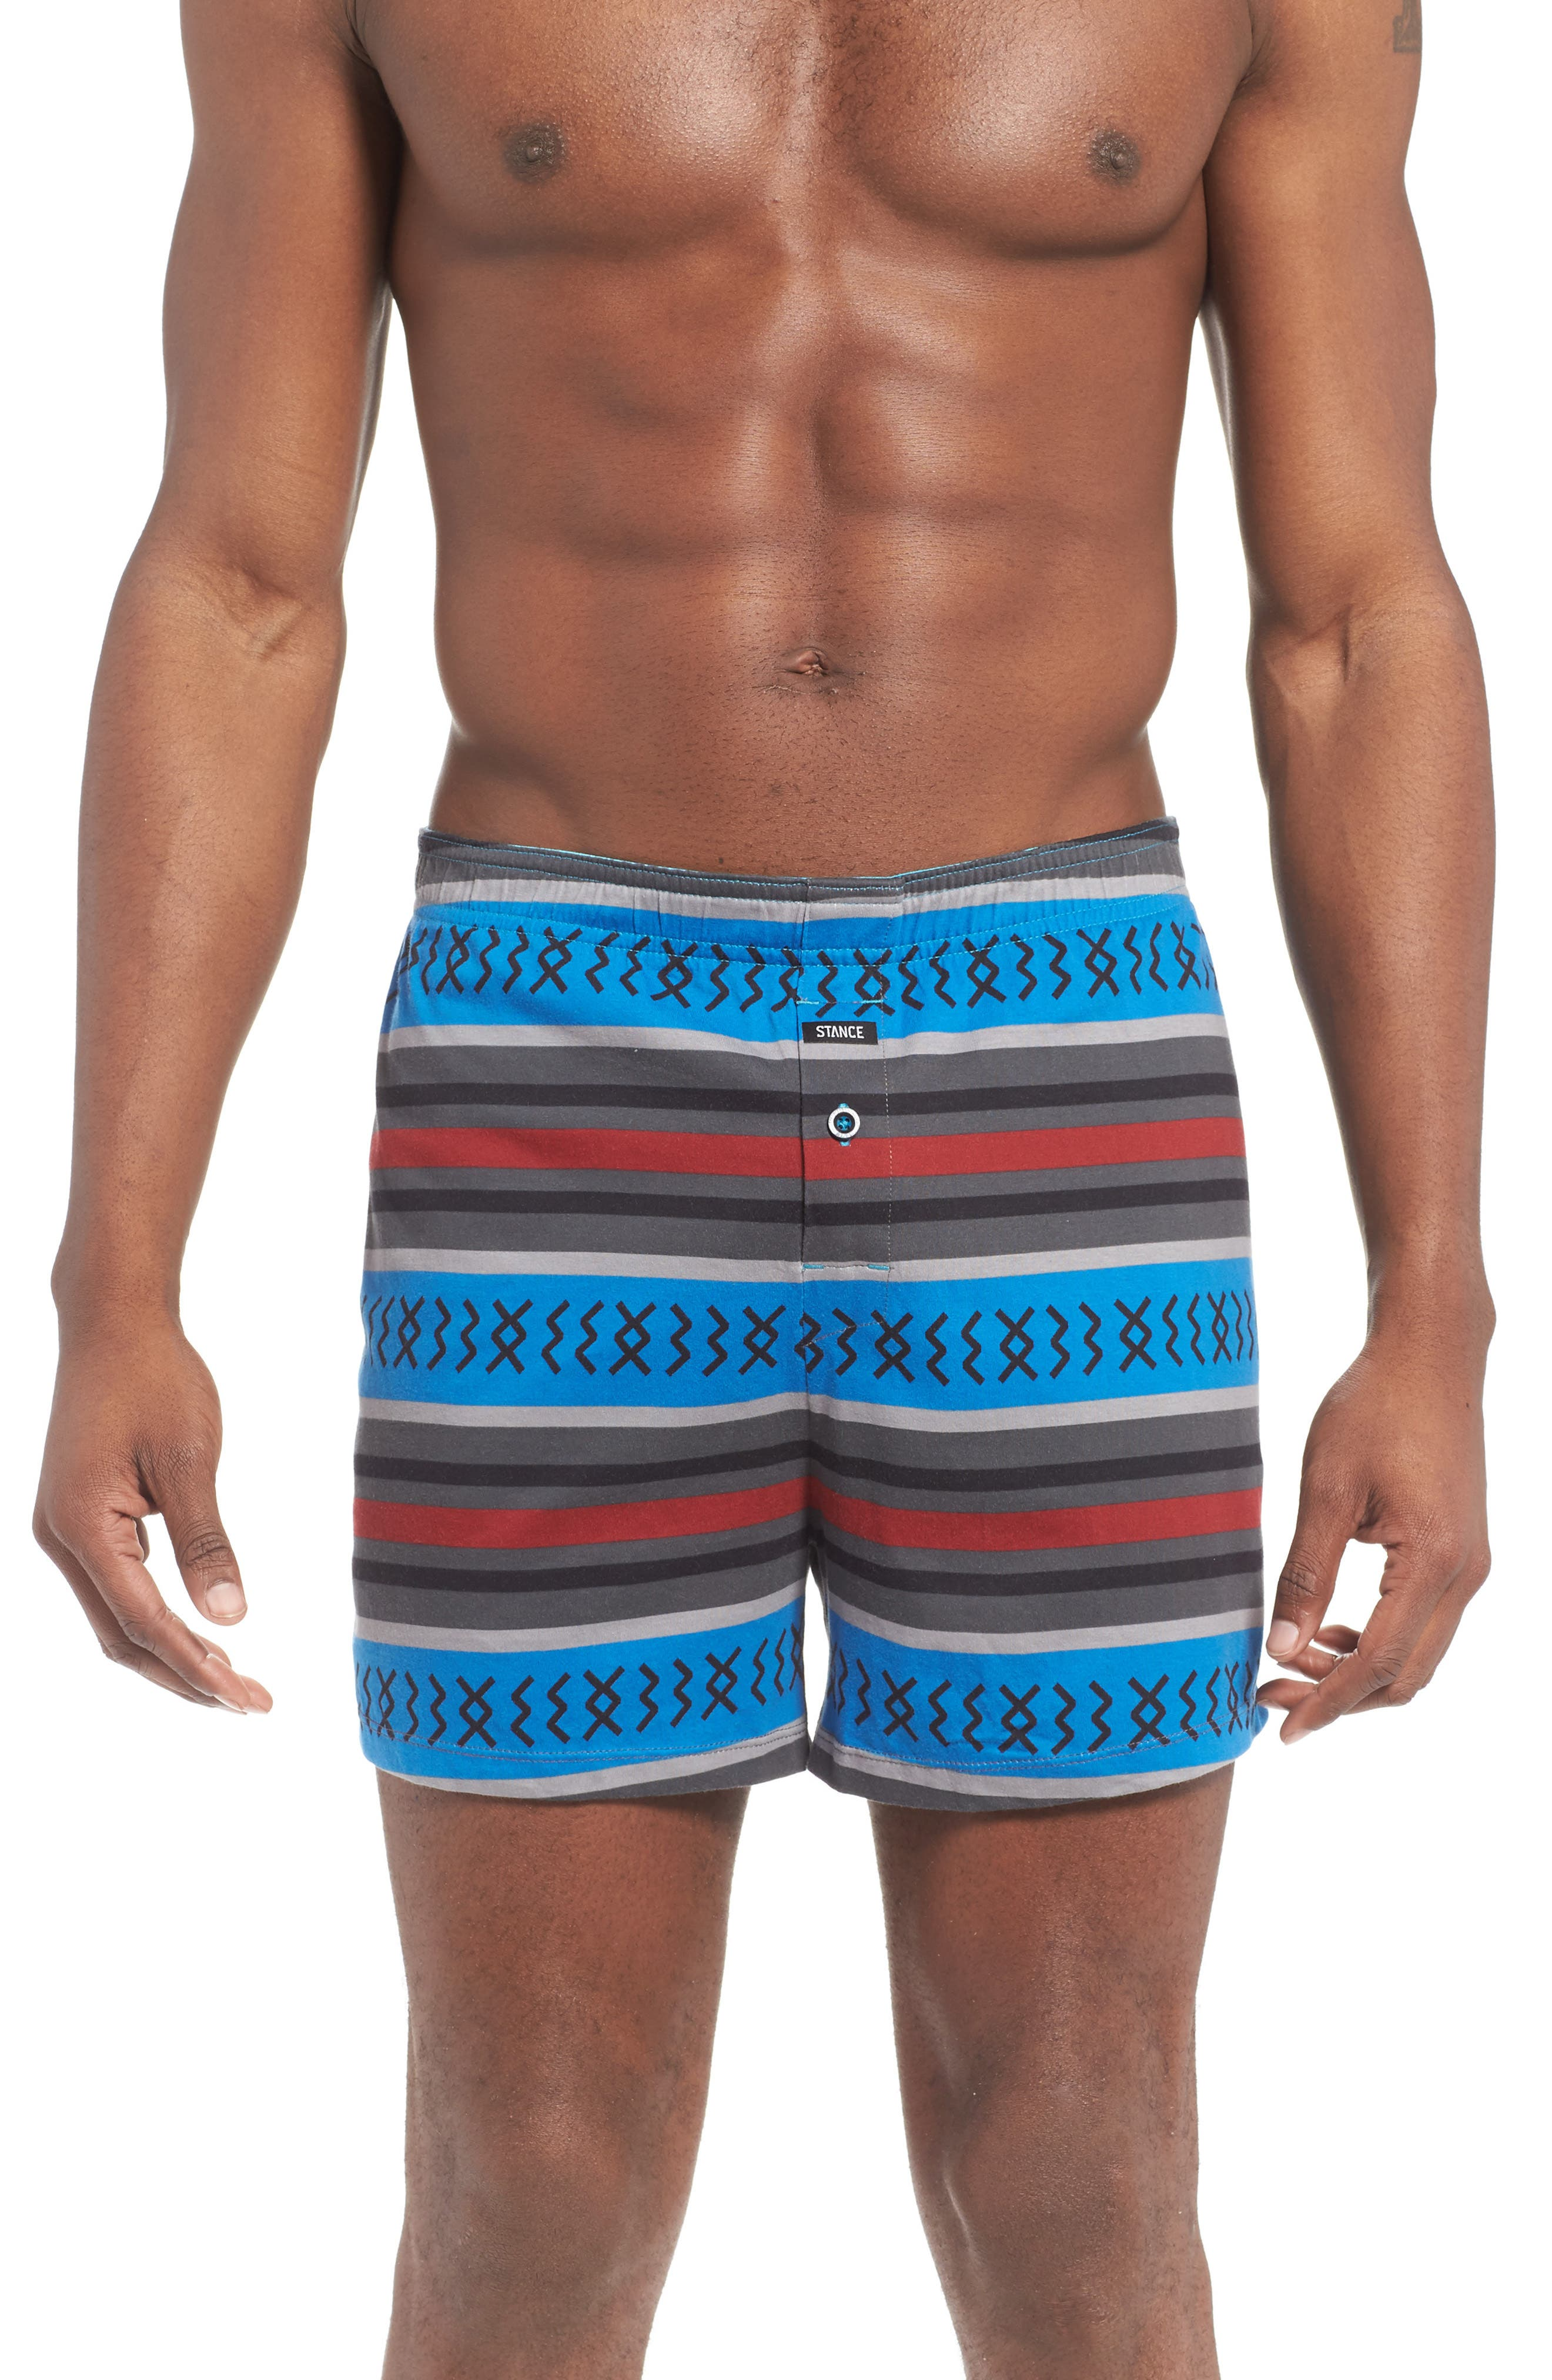 Visita Rune Relaxed Fit Boxer Briefs,                         Main,                         color, 030